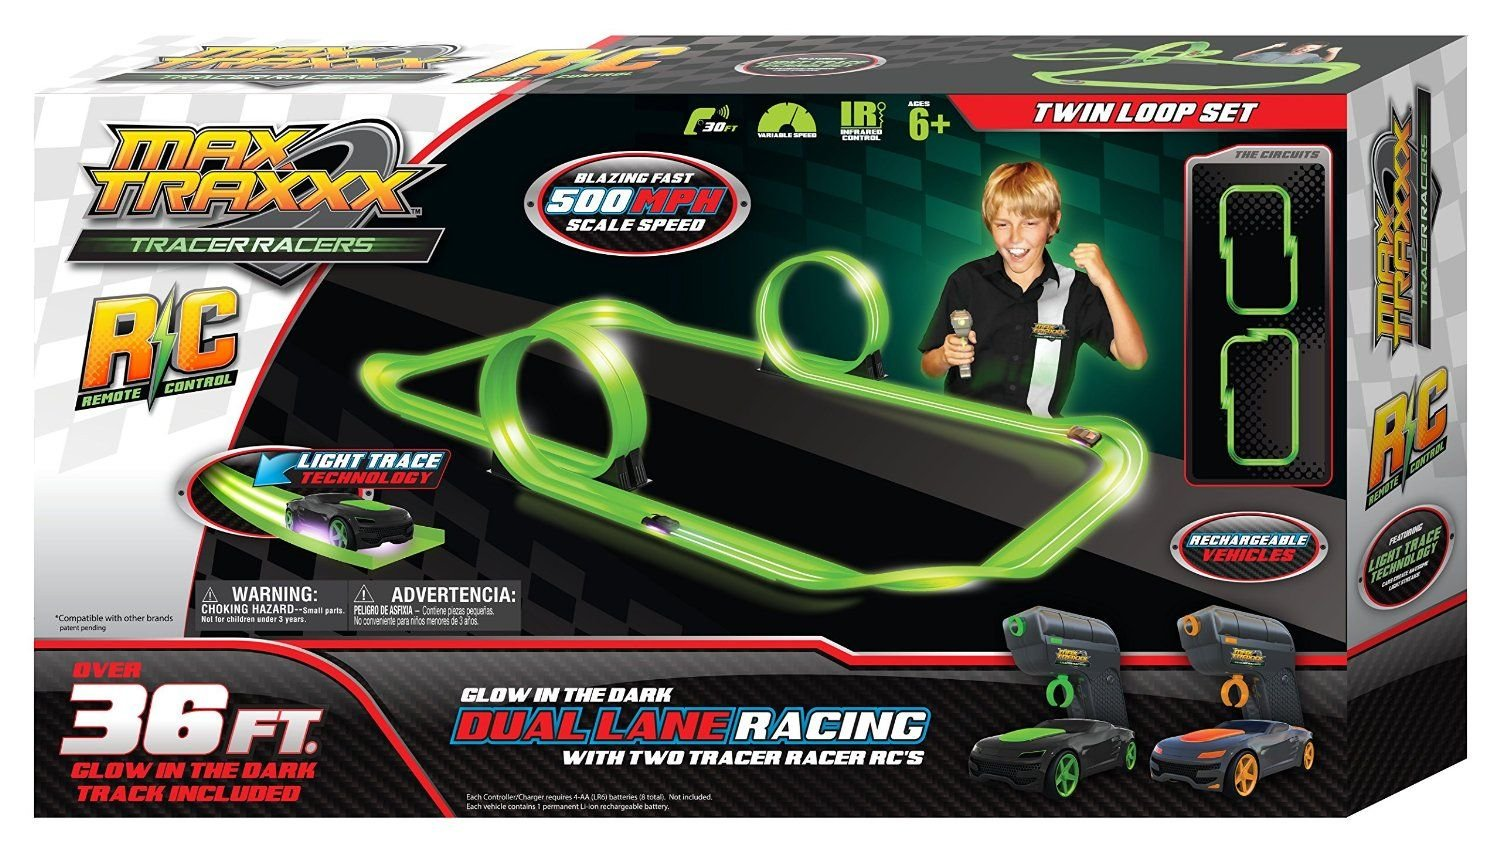 Max Traxxx / Tracer Racers R/C High Speed Remote Control Twin Loop Track Set by MaxTraxxx Skullduggery